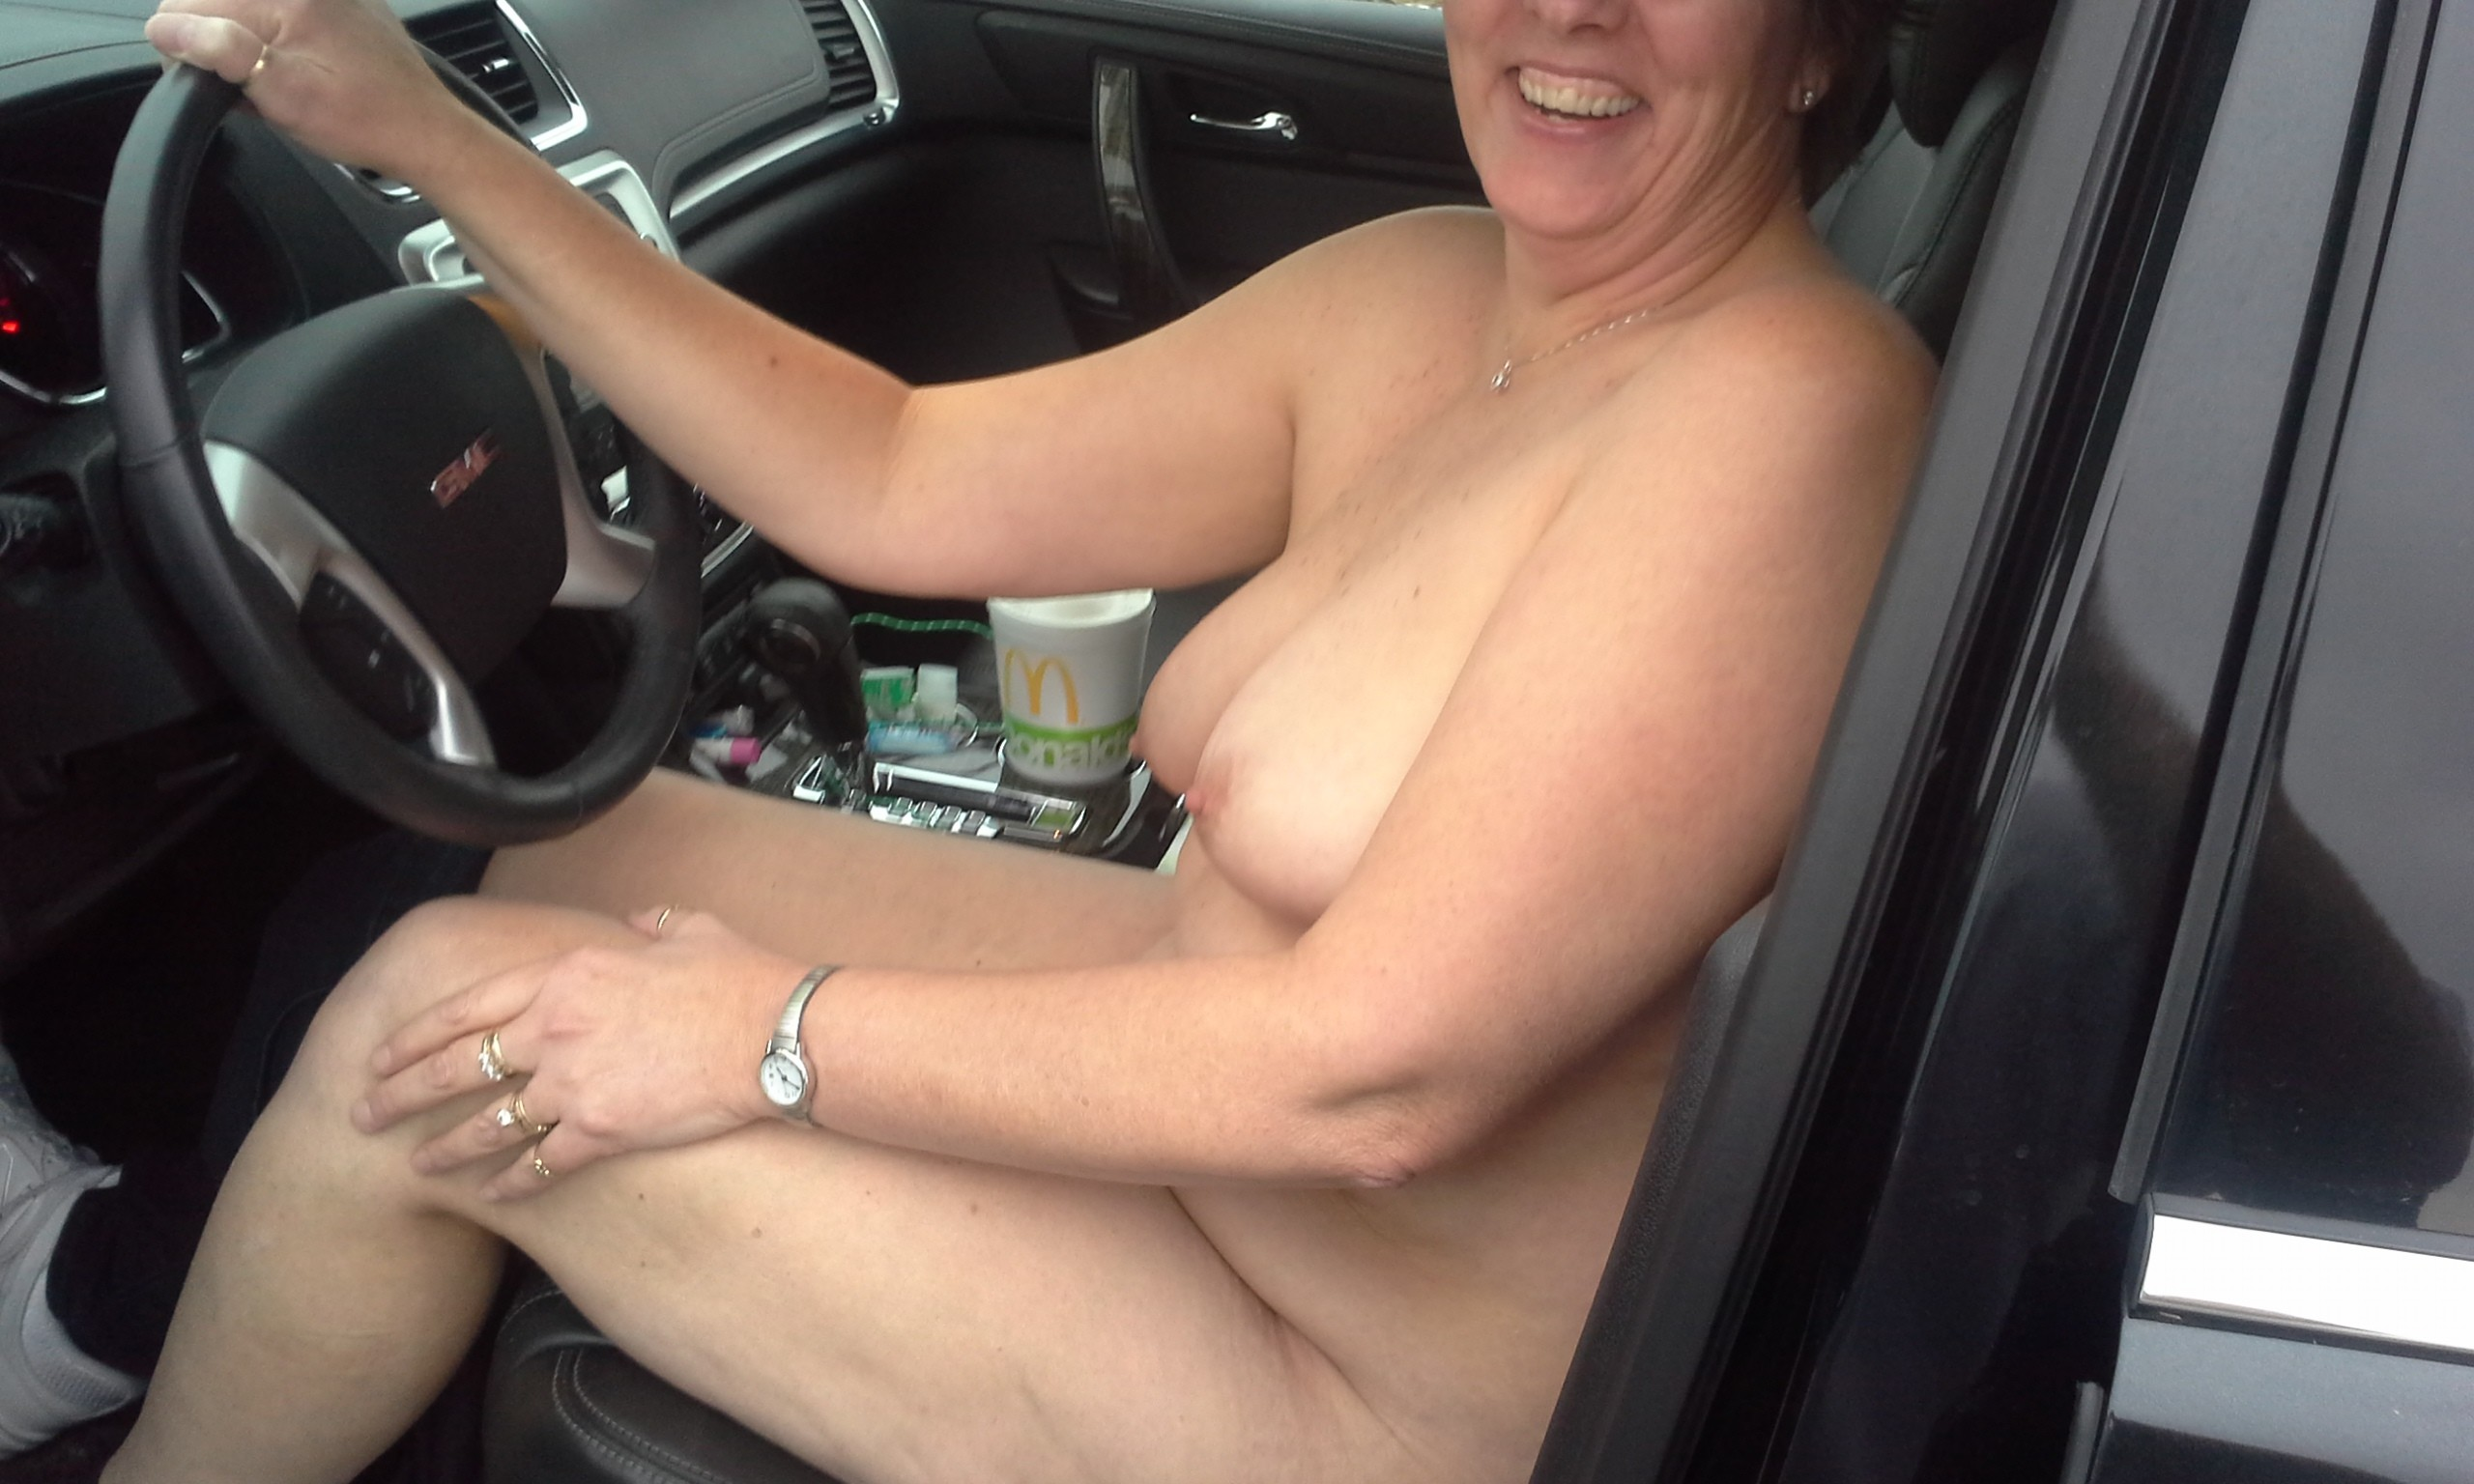 Milf shows pussy while driving this